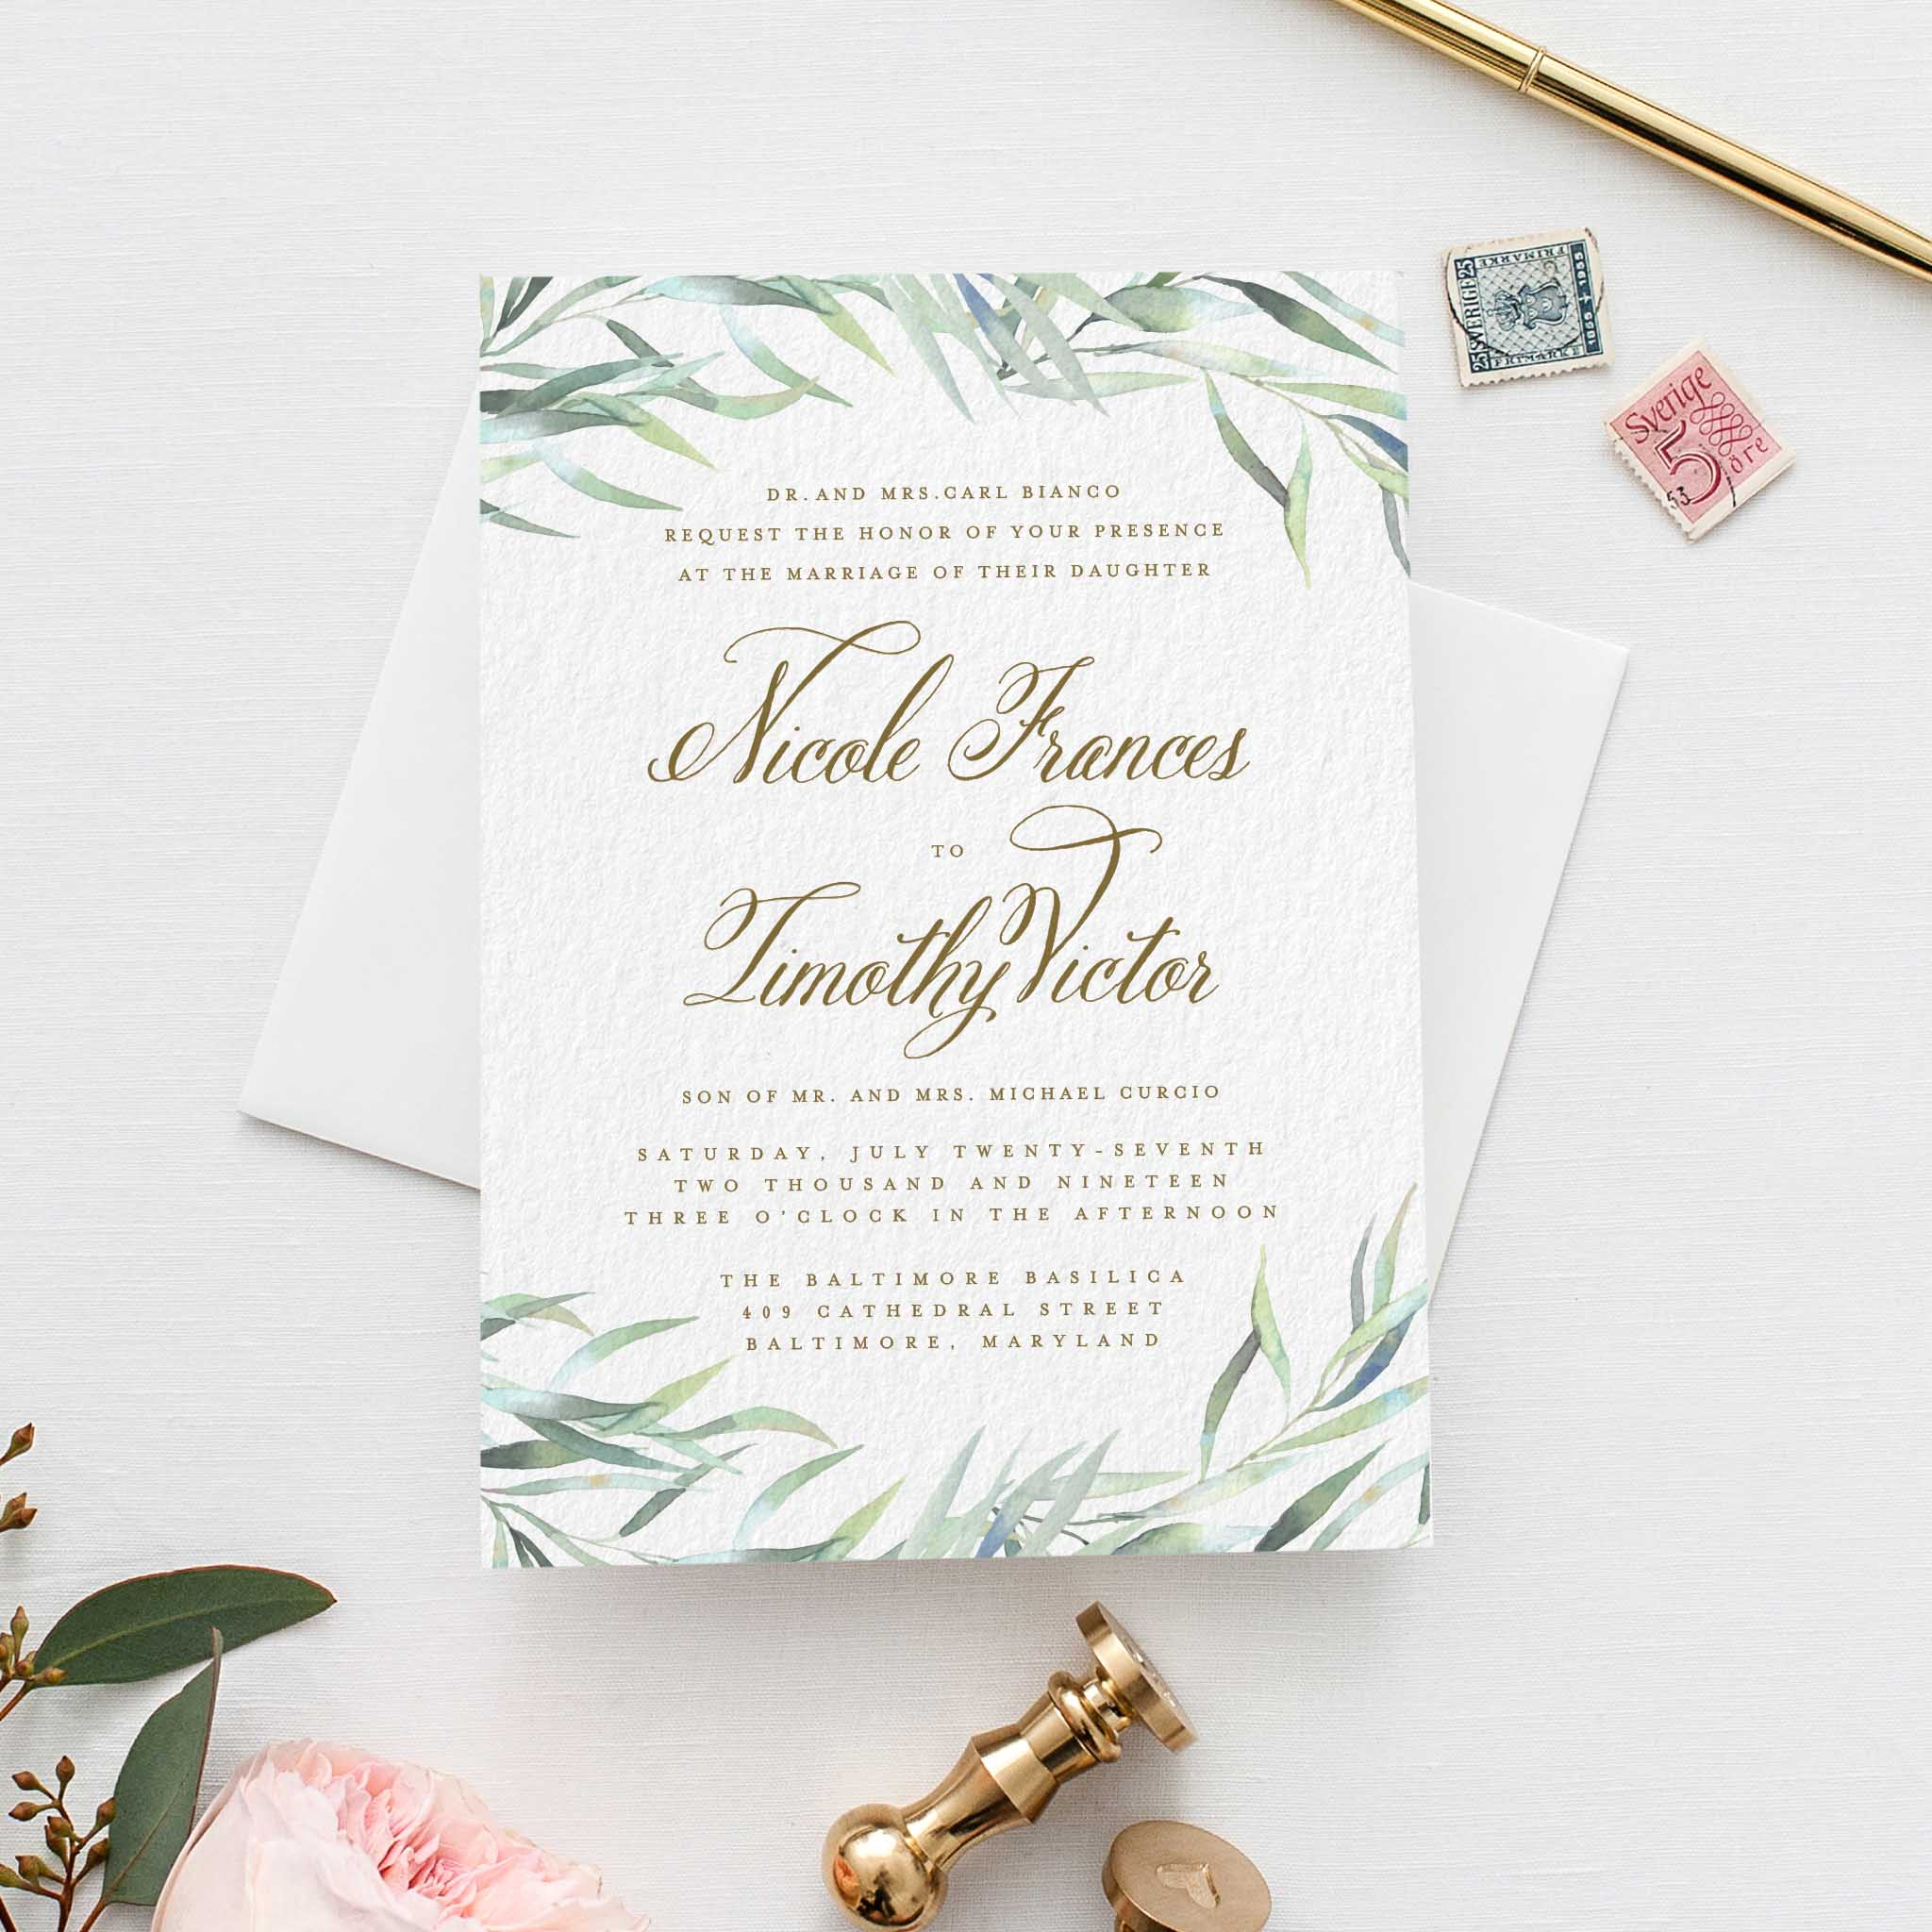 Wedding Invitation Wording: Eucalyptus Wedding Invitation